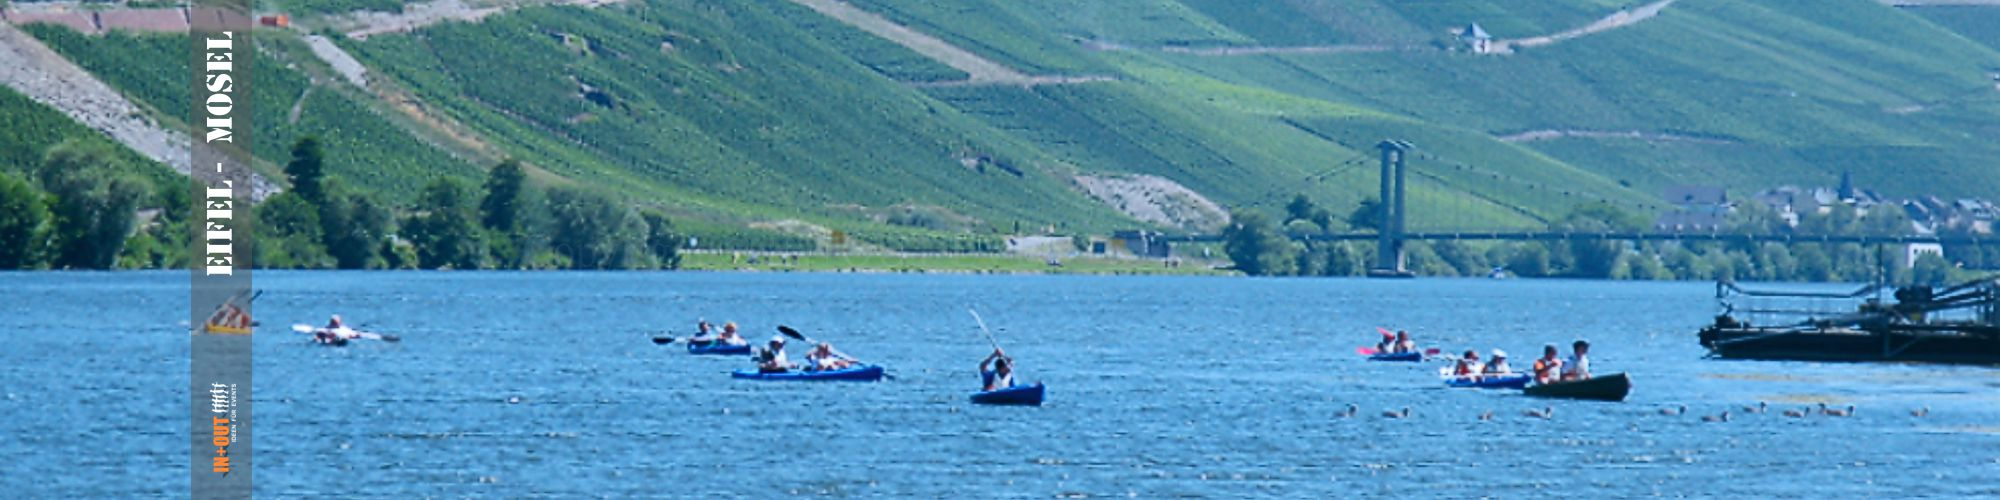 Ideen für Team Events - Eifel + Mosel - IN+OUT TEAM EVENTS